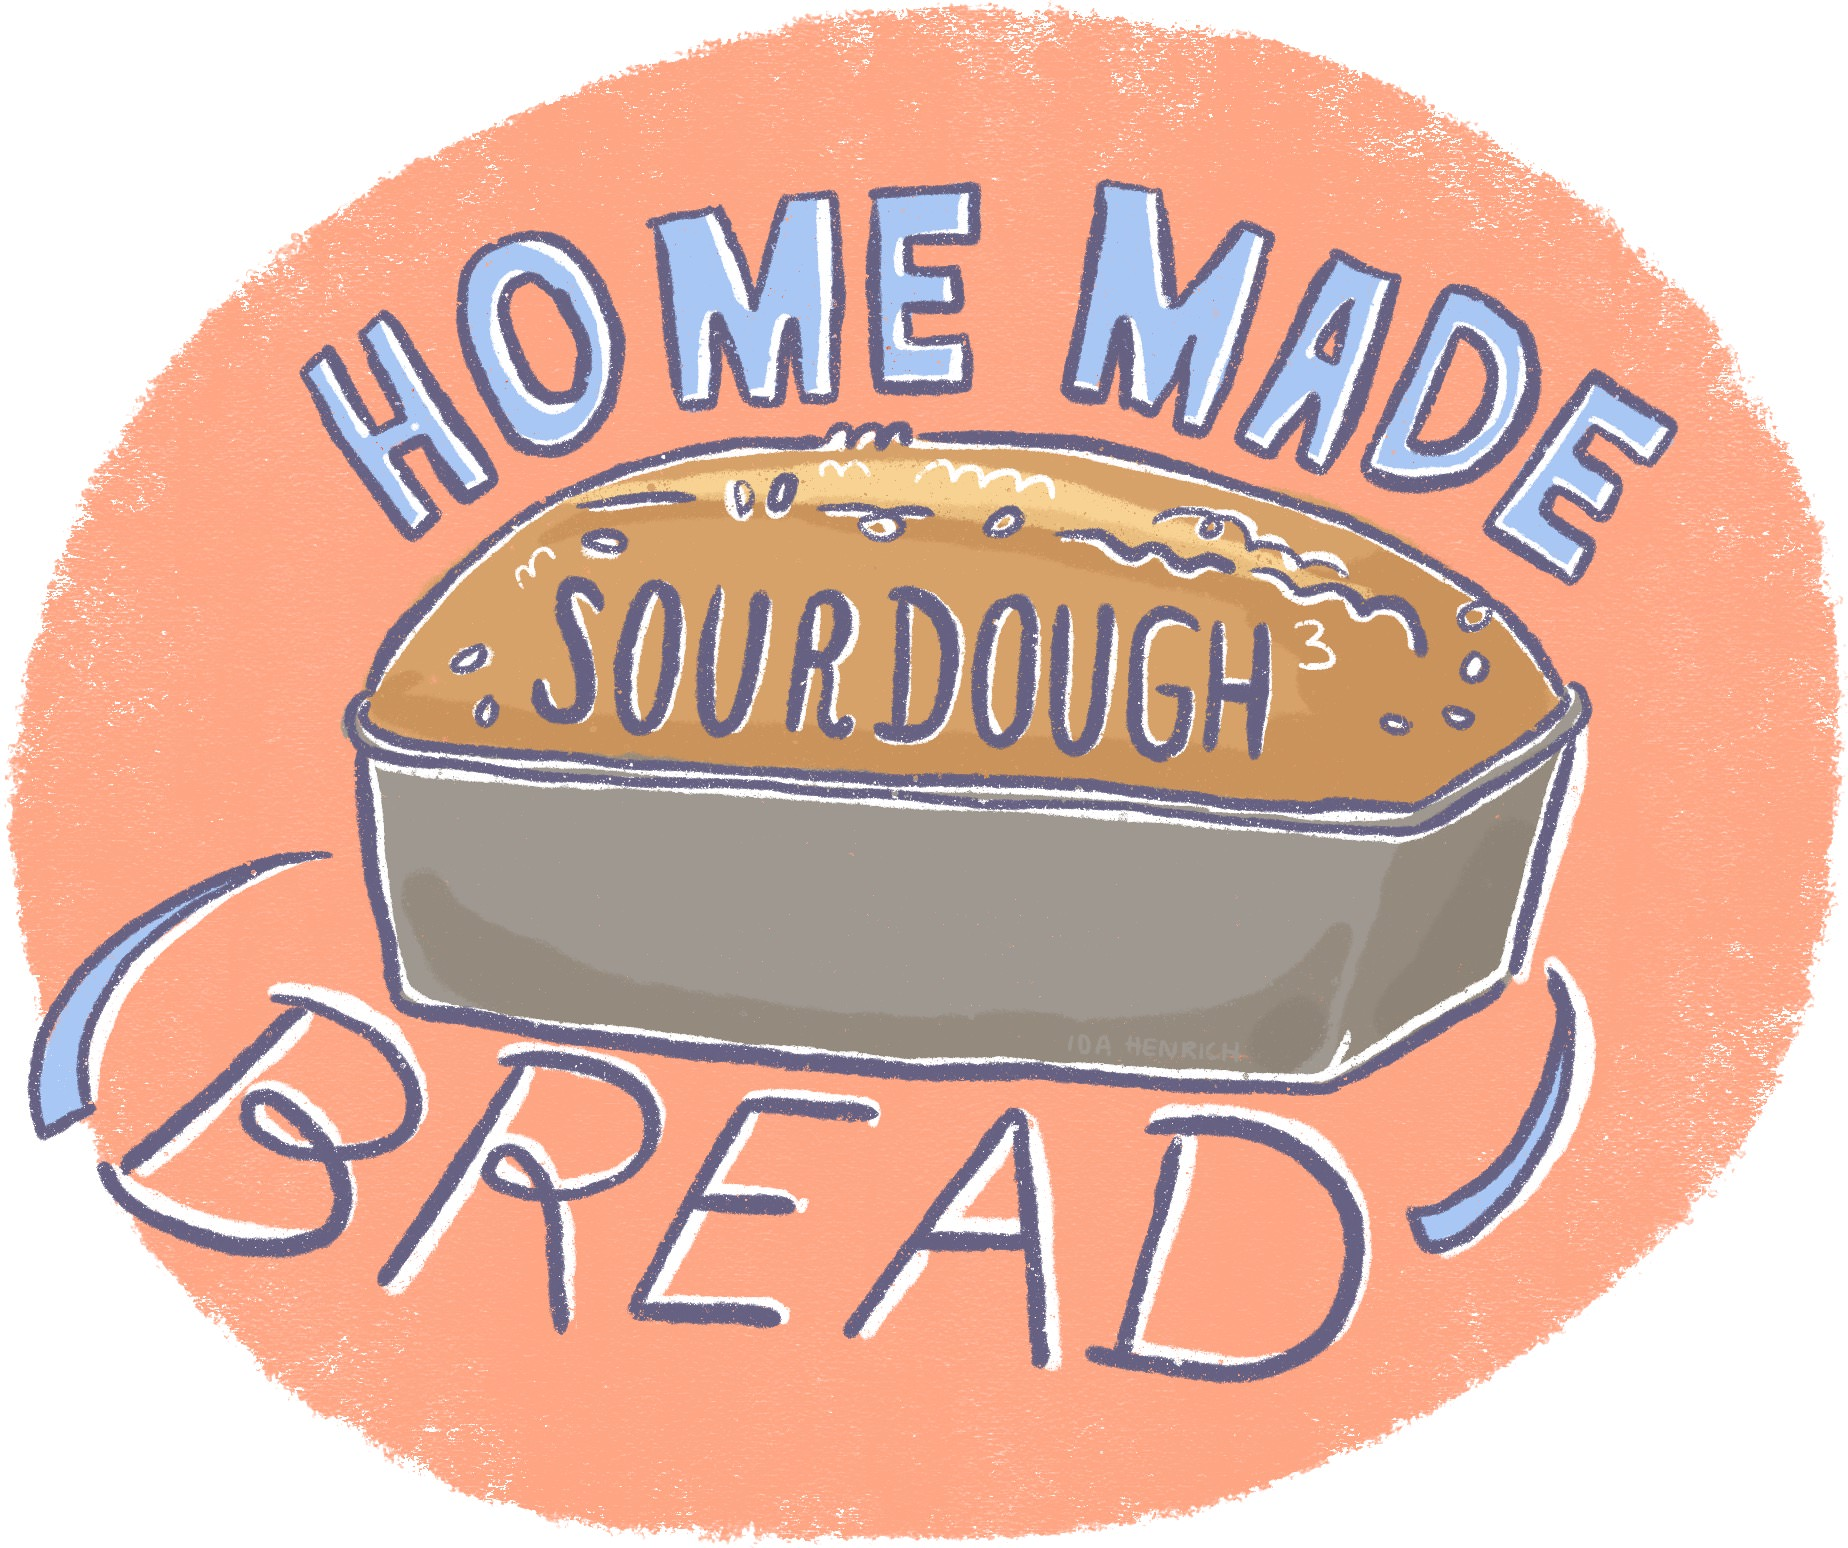 Home made Sourdough | By Ida Henrich